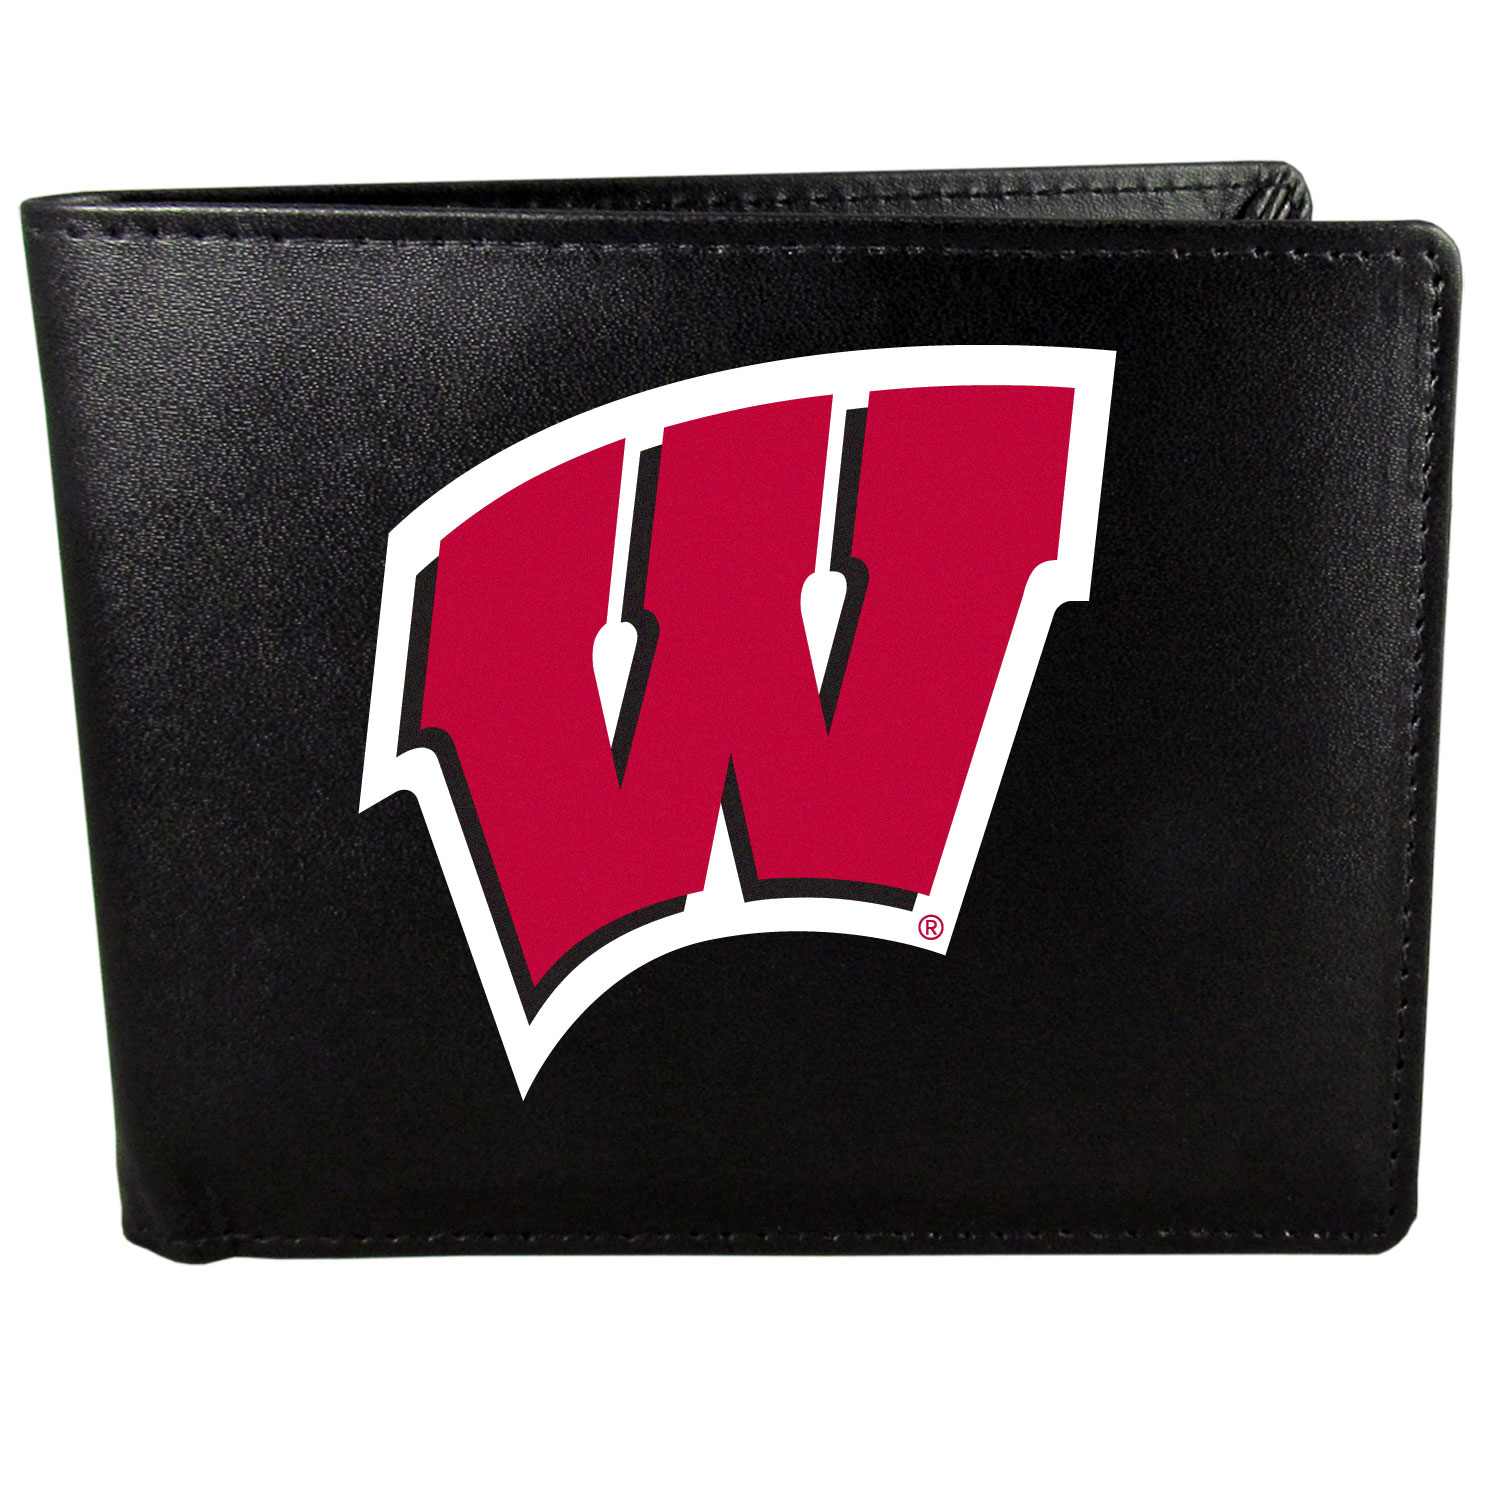 Wisconsin Badgers Leather Bi-fold Wallet, Large Logo - Our classic fine leather bi-fold wallet is meticulously crafted with genuine leather that will age beautifully so you will have a quality wallet for years to come. The wallet opens to a large, billfold pocket and numerous credit card slots and has a convenient windowed ID slot. The front of the wallet features an extra large Wisconsin Badgers printed logo.